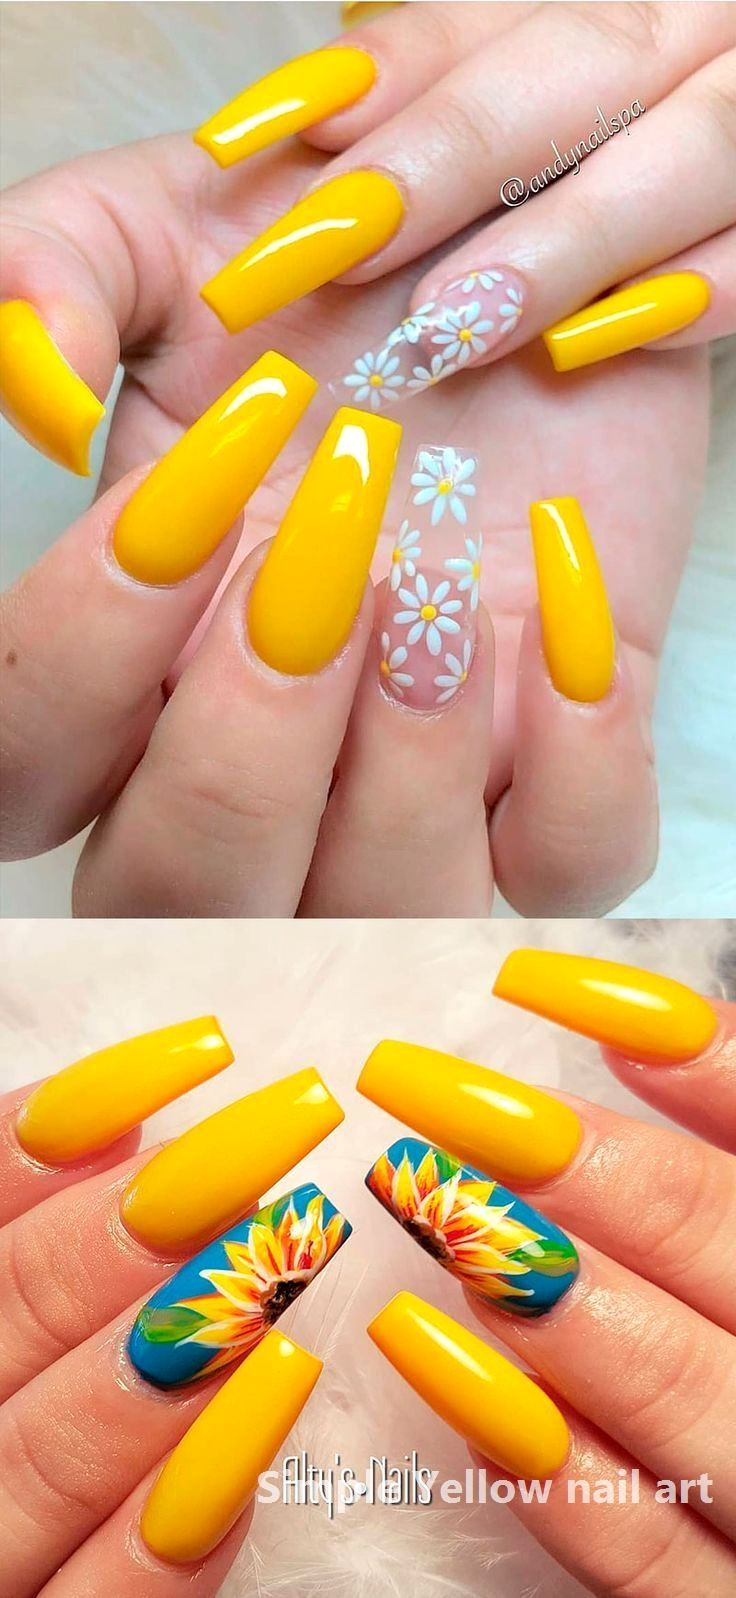 23 Great Yellow Nail Art Designs 2020 Naildesigns In 2020